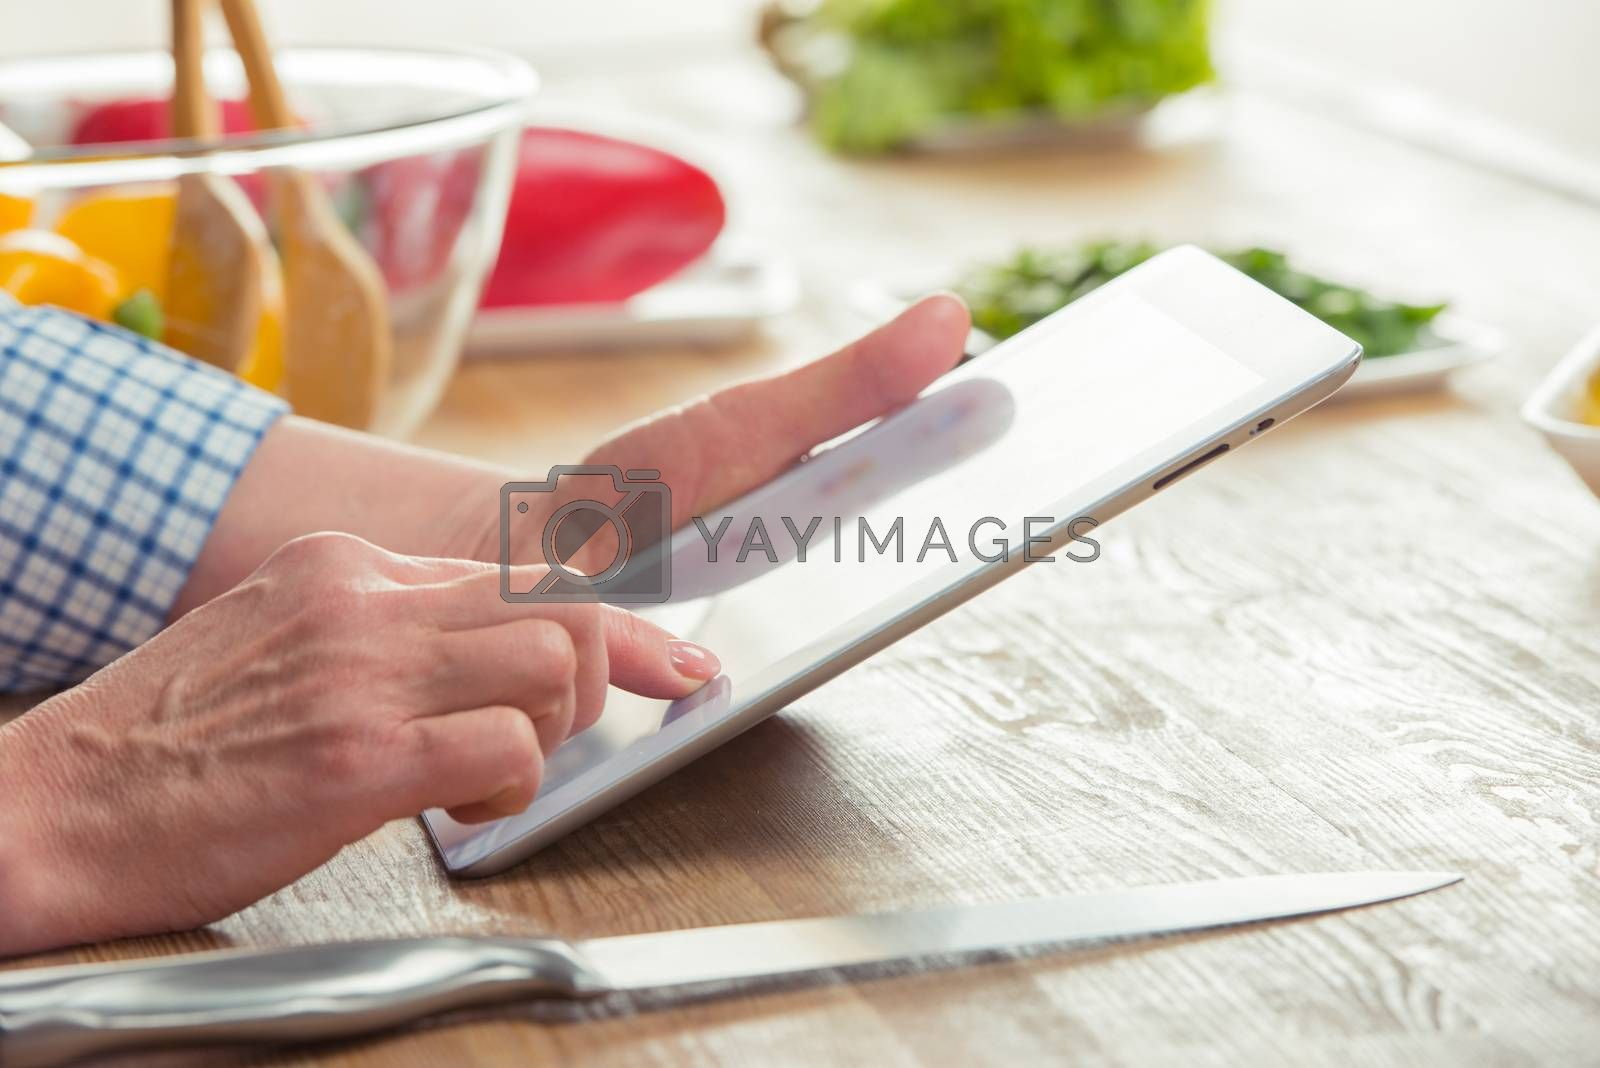 Close-up partial view of woman using digital tablet in kitchen